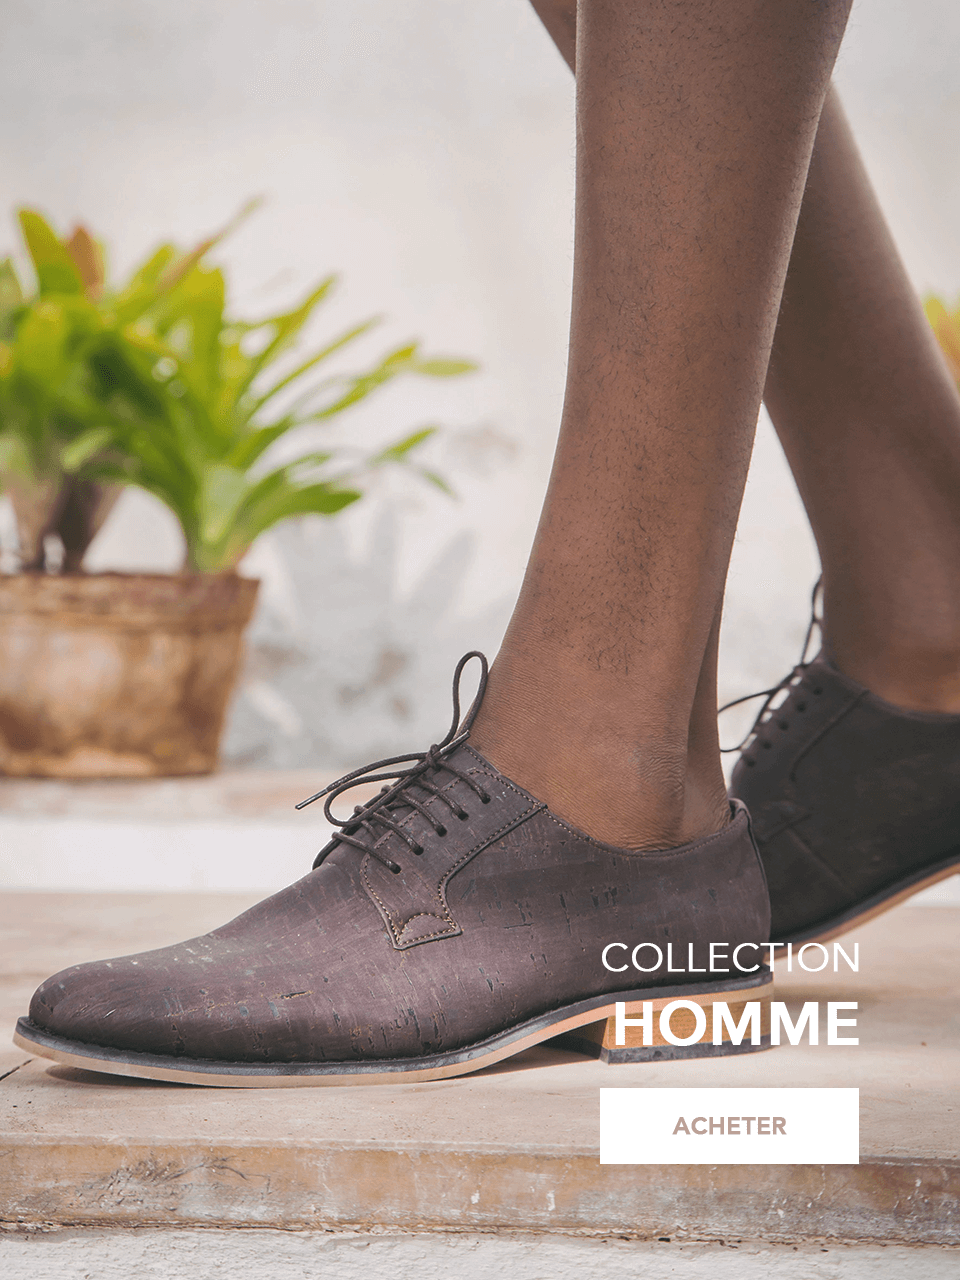 Nouvelle Collection chaussures veganes SS 20 homme vegane schuhe